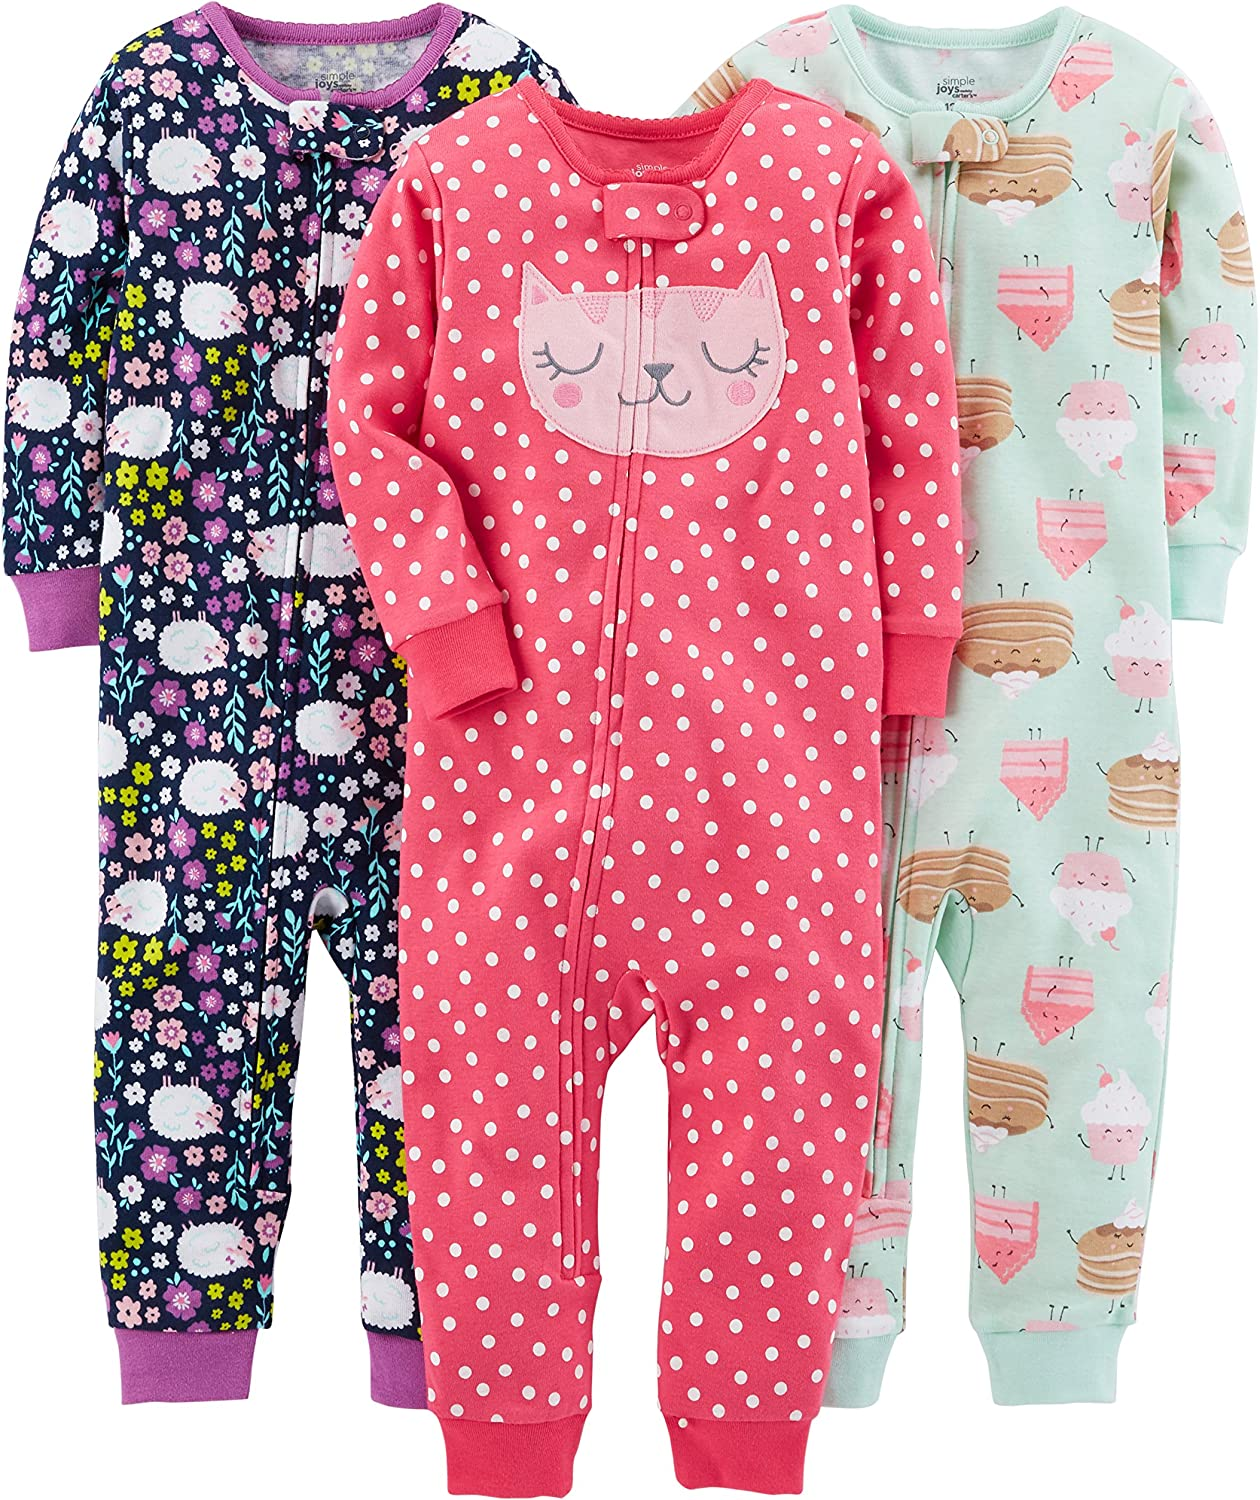 Simple Joys by Carters baby-girls 3-Pack Snug Fit Footless Cotton Pajamas Pajama Set